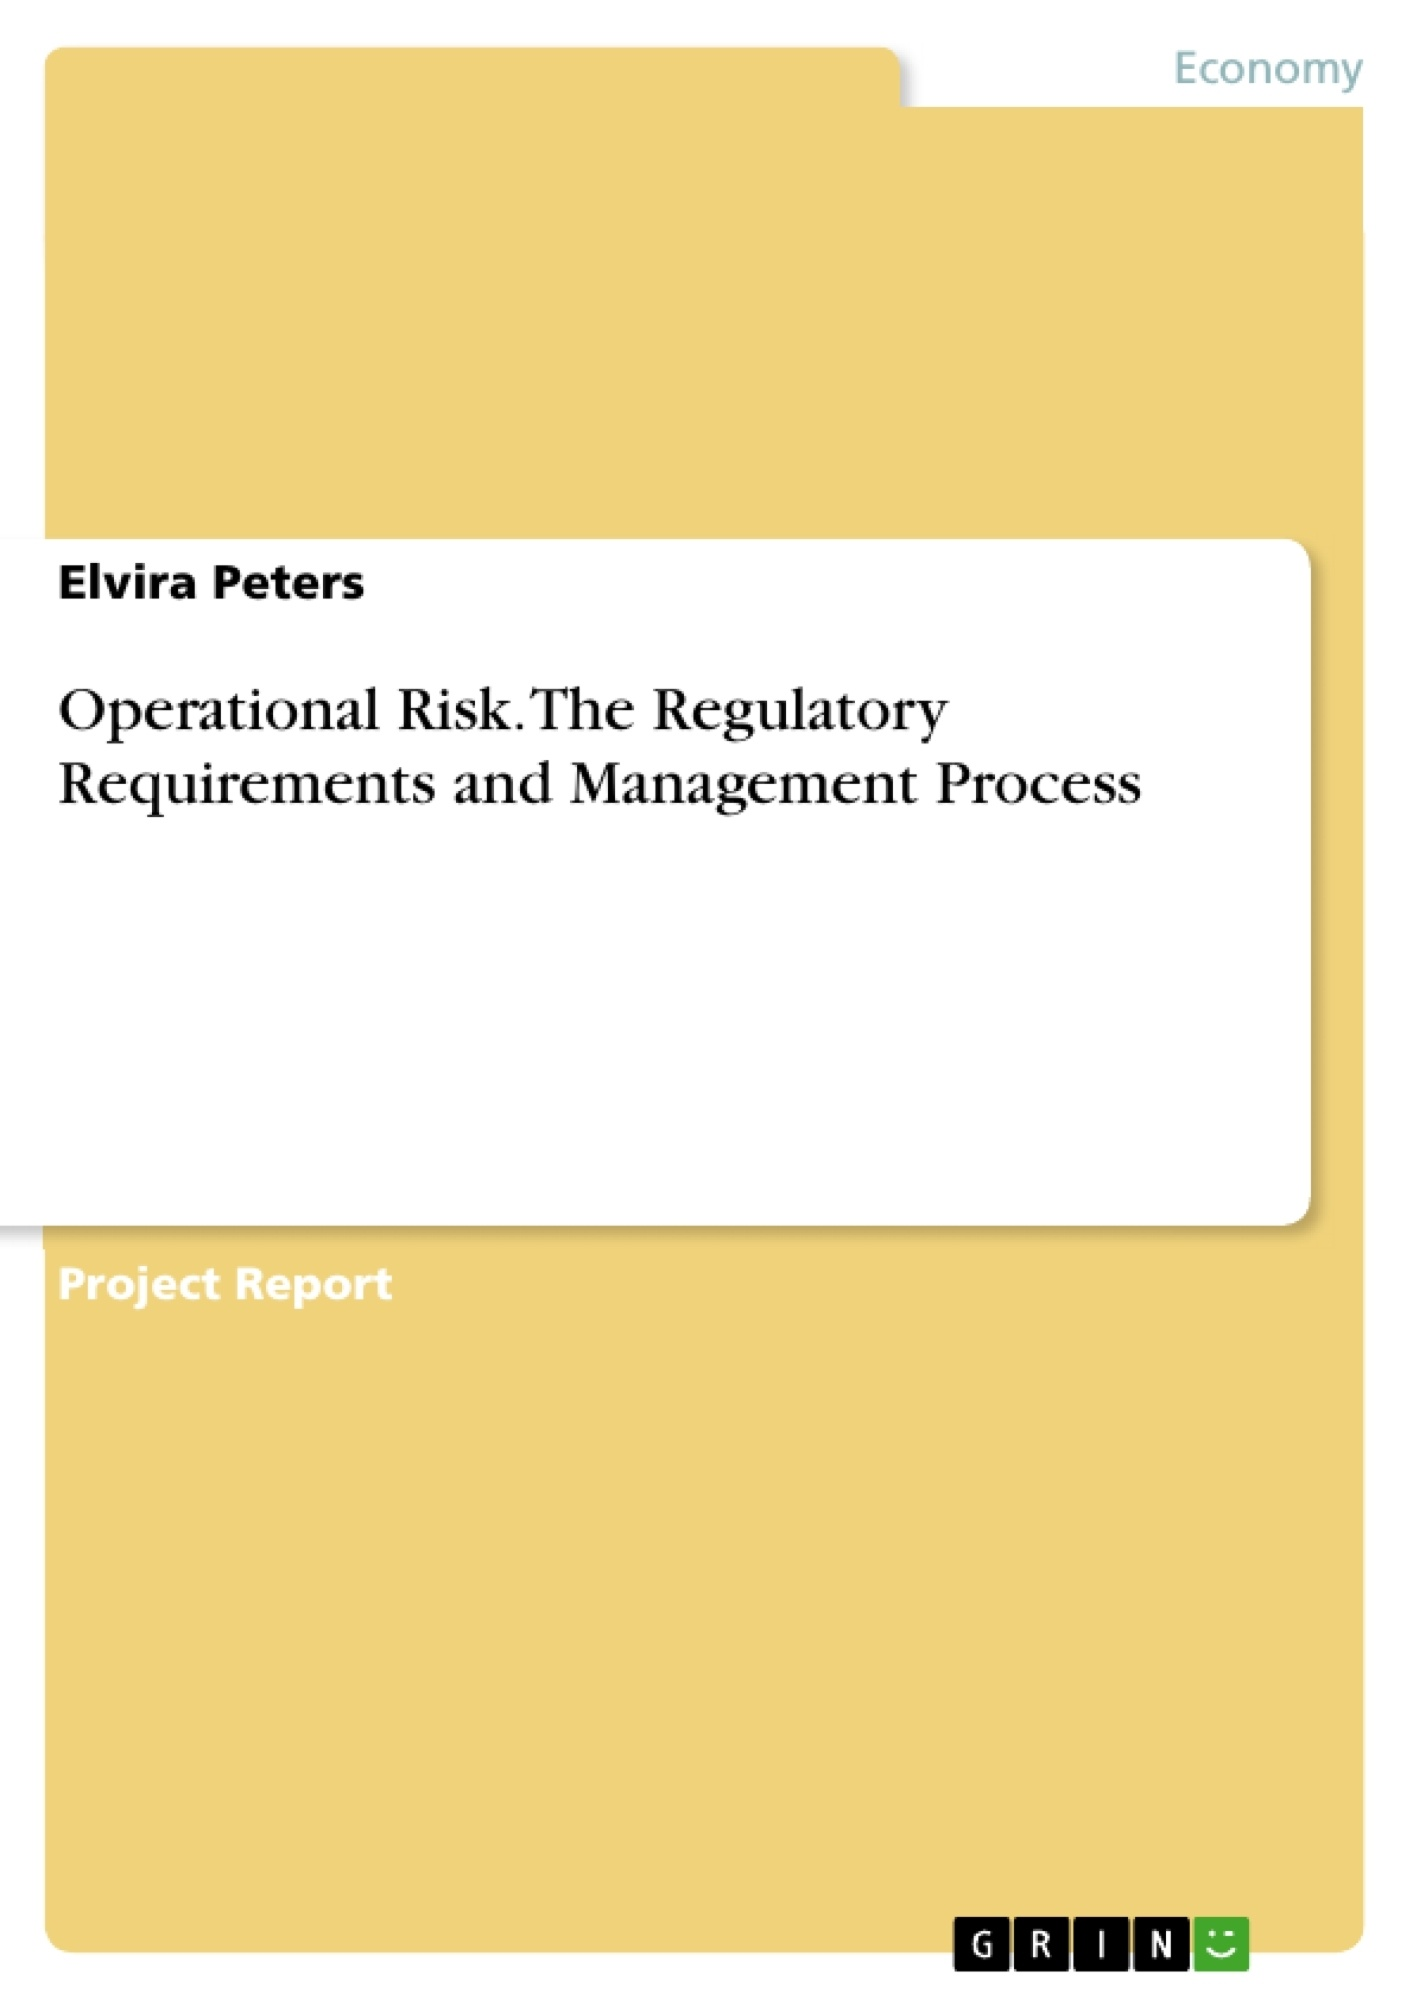 Title: Operational Risk. The Regulatory Requirements and Management Process